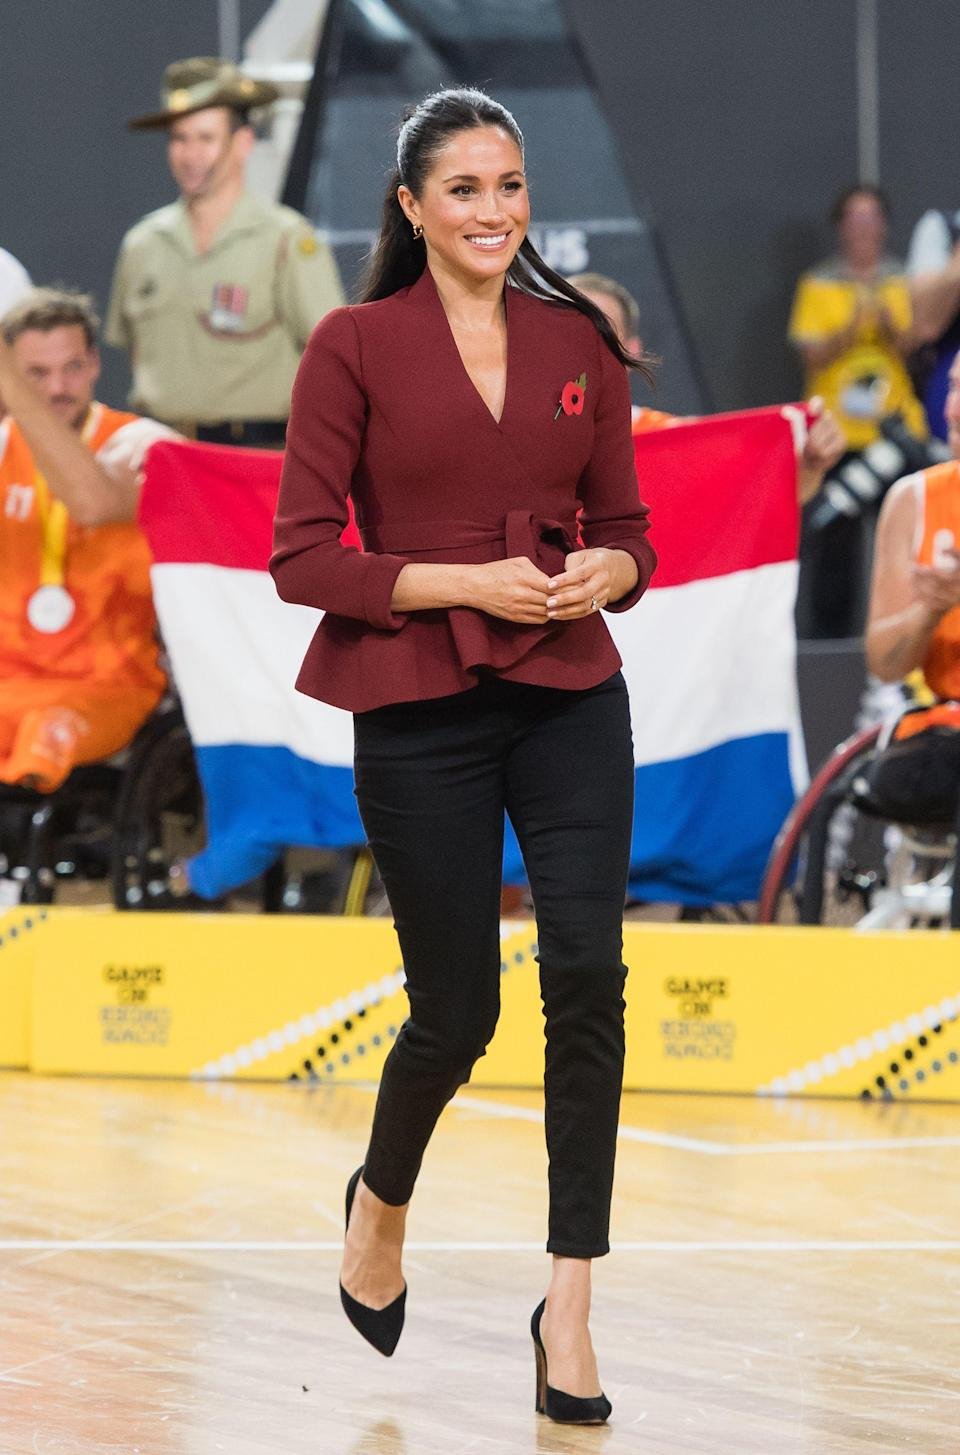 """<p>To watch the US v Netherlands basketball final the pregnant Duchess wore a maroon wrap top with peplum by popular luxury Australian label <a href=""""https://us.scanlantheodore.com/collections/w18-rwt/products/crepeknitwrapjacketgarnet"""" rel=""""nofollow noopener"""" target=""""_blank"""" data-ylk=""""slk:Scanlan Theodore"""" class=""""link rapid-noclick-resp"""">Scanlan Theodore</a>, with black <a href=""""https://outlanddenim.co.uk/collections/women-1/products/harriet-in-black-1"""" rel=""""nofollow noopener"""" target=""""_blank"""" data-ylk=""""slk:Outland jeans"""" class=""""link rapid-noclick-resp"""">Outland jeans</a> and <a href=""""https://www.sarahflint.com/collections/pumps-1/products/jay-pump-100-black-suede?variant=28249886273&clickId=2480597981&clickId=2480597981&publisherId=21181"""" rel=""""nofollow noopener"""" target=""""_blank"""" data-ylk=""""slk:Sarah Flint heels"""" class=""""link rapid-noclick-resp"""">Sarah Flint heels</a>.</p>"""